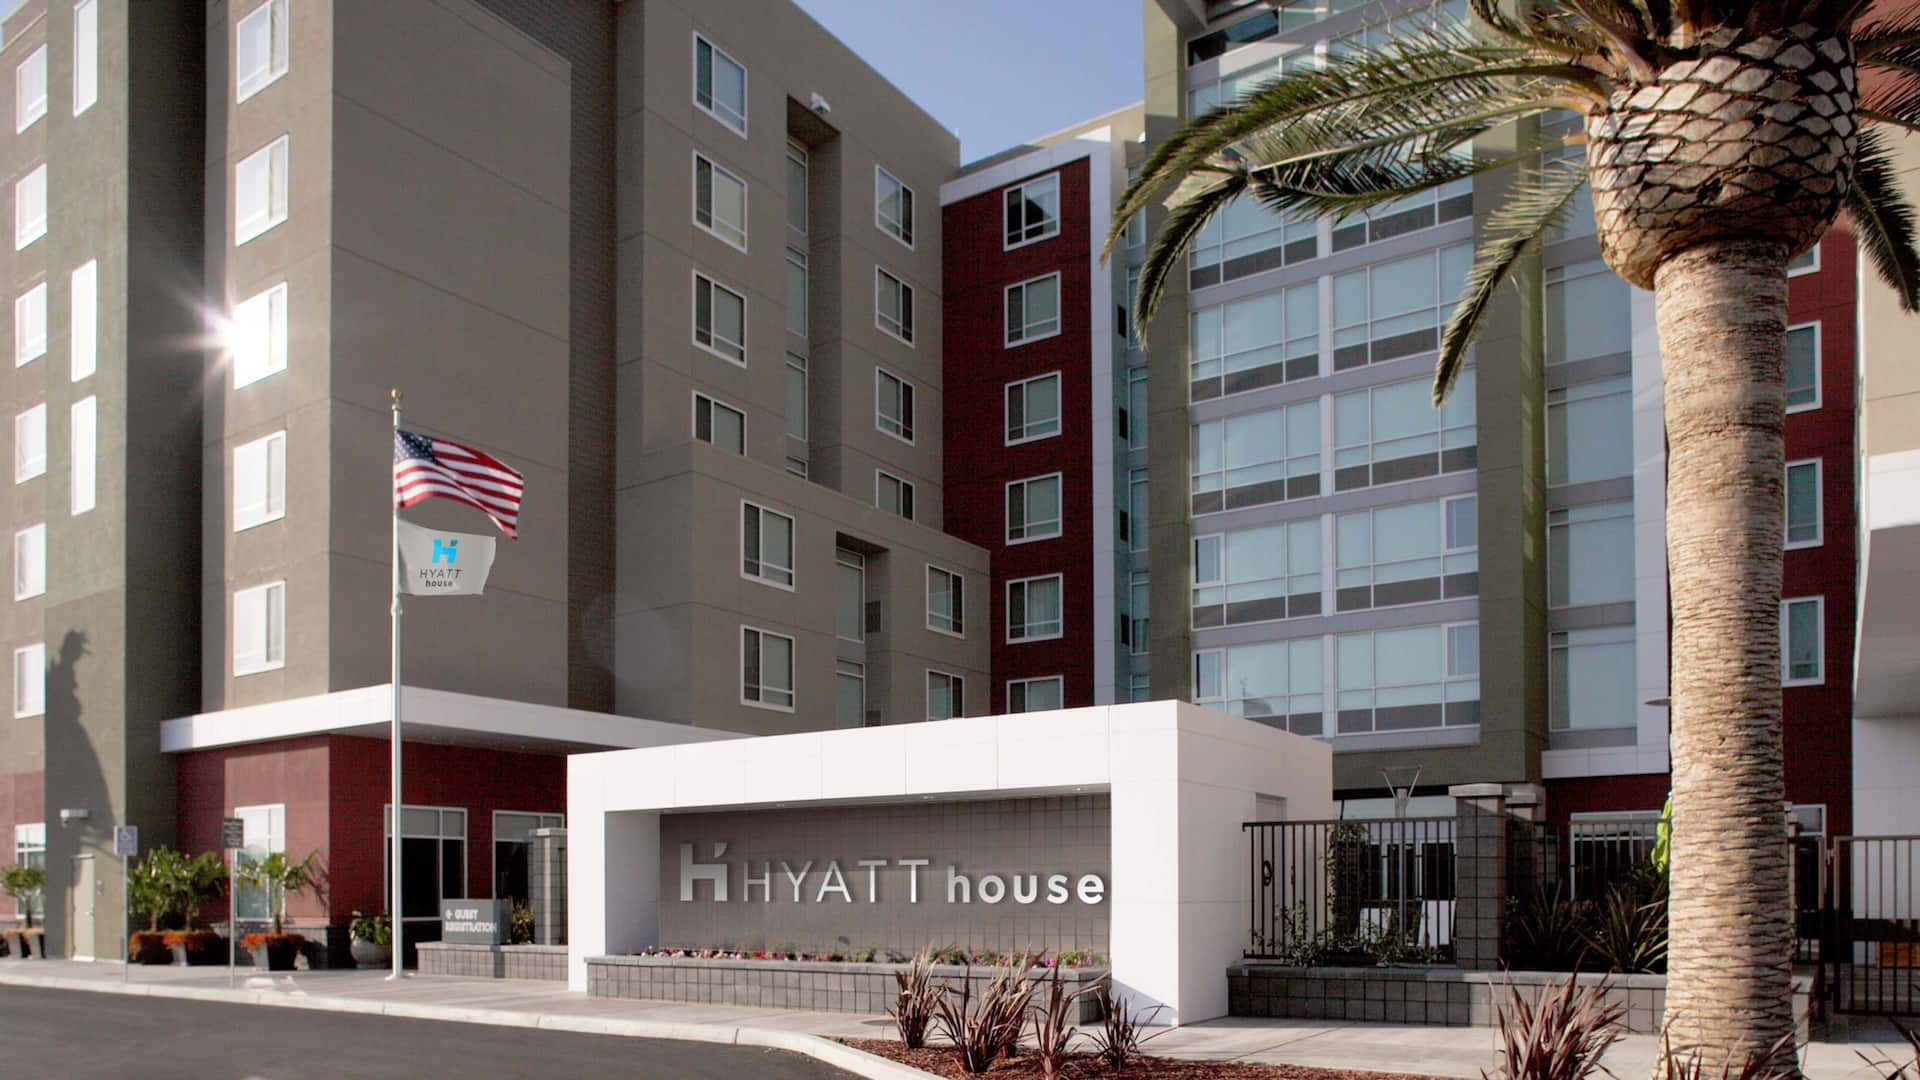 Hyatt House San Jose Silicon Valley Exterior